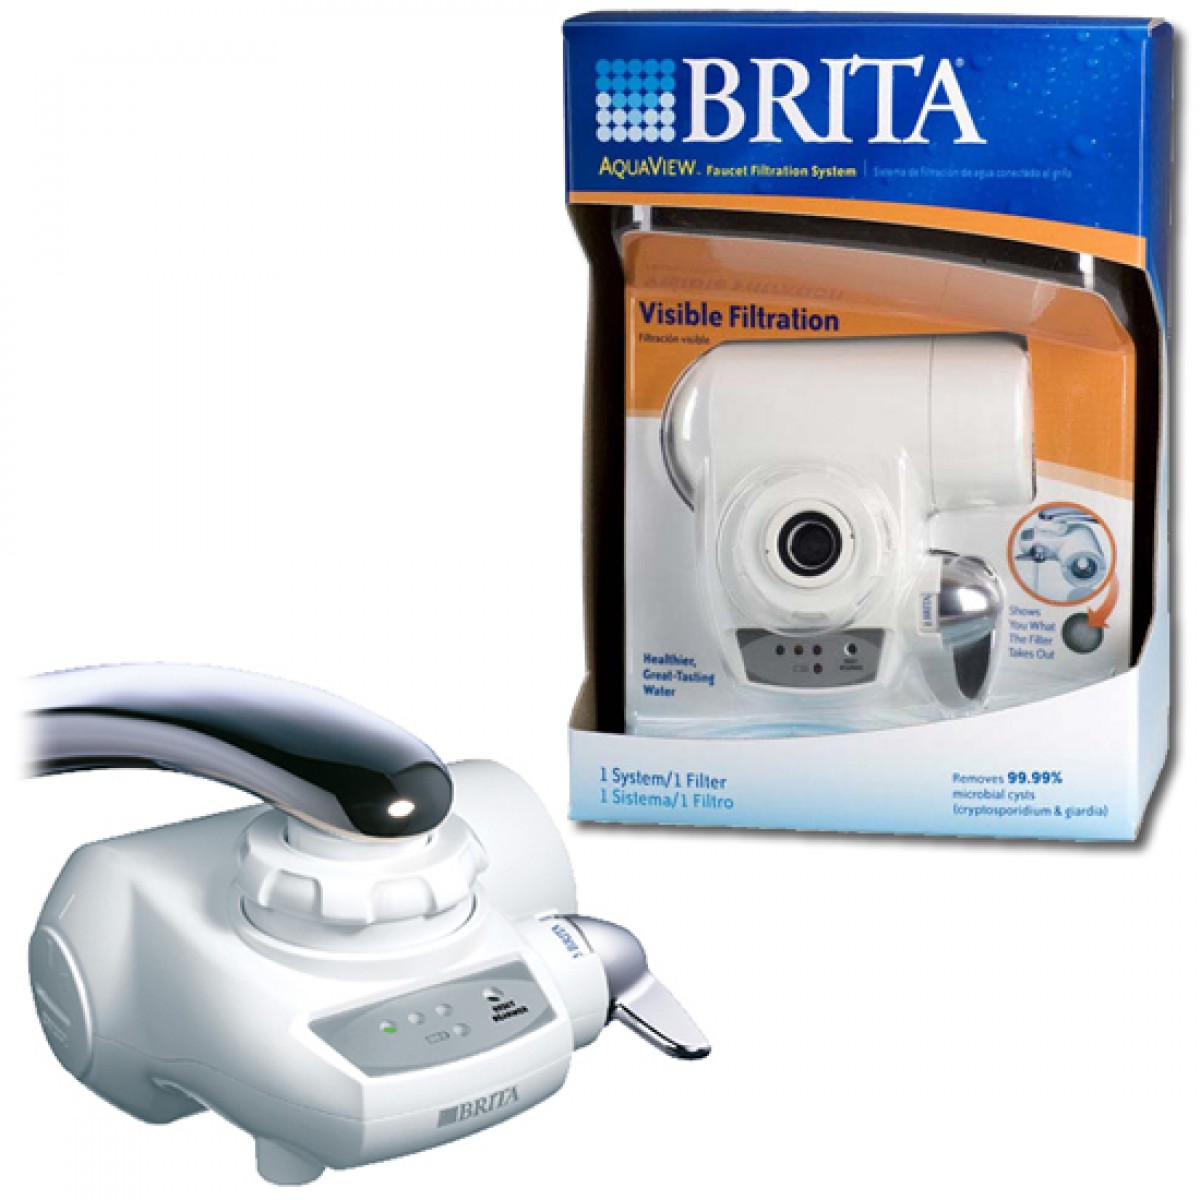 42645 Brita AquaView AVFF-100 Faucet Filter System - White